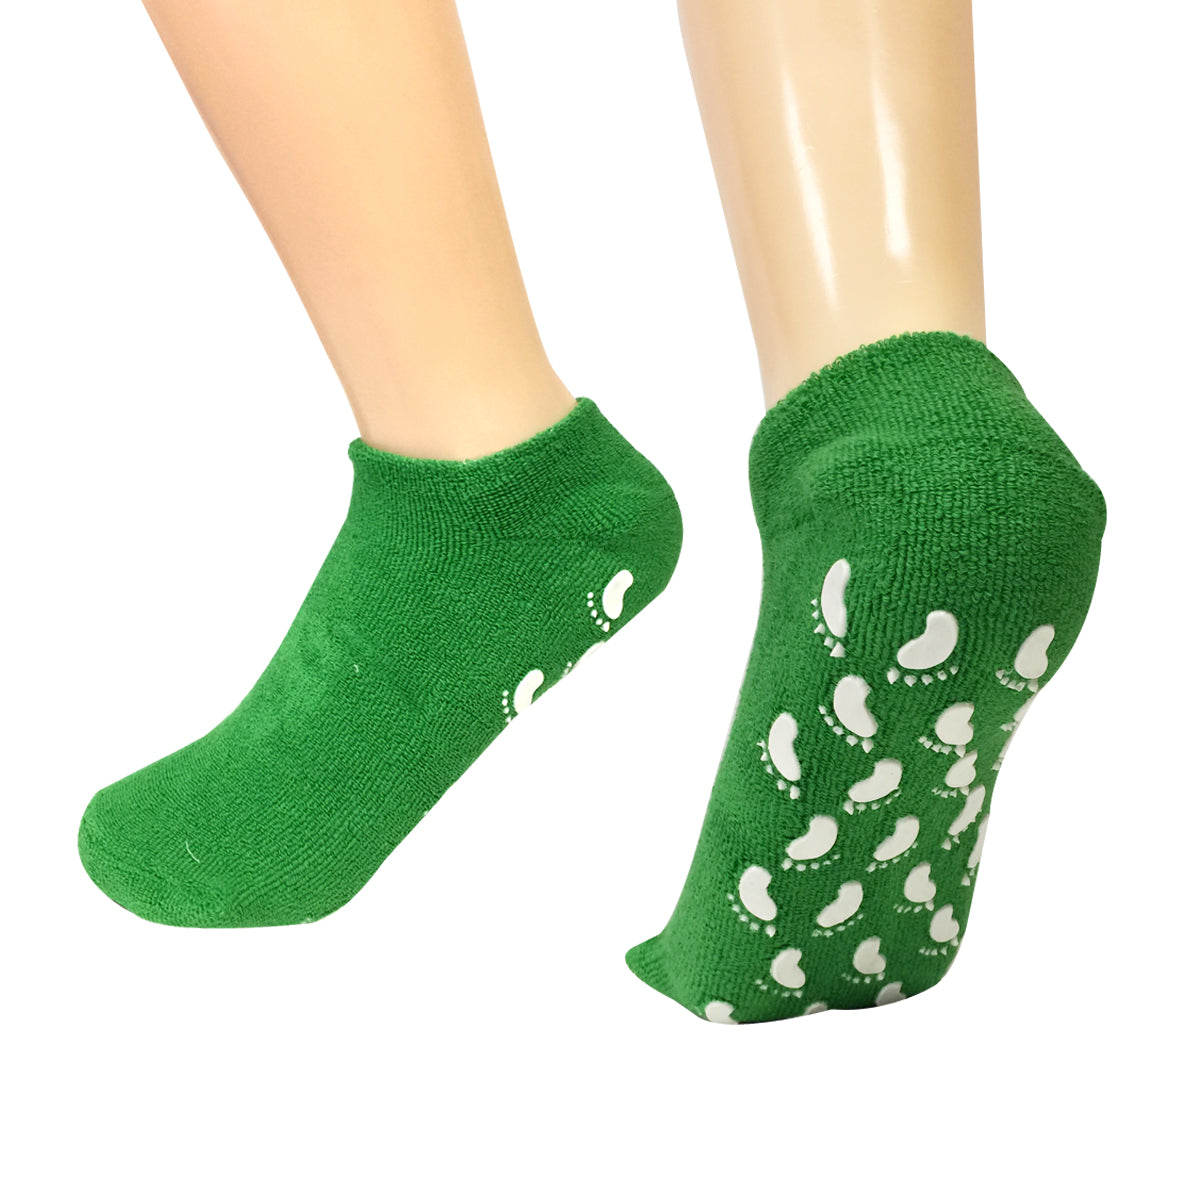 Wrapables Women Ankle Length Non-Skid Gripper Socks (Set of 3), Blue, Green, Black